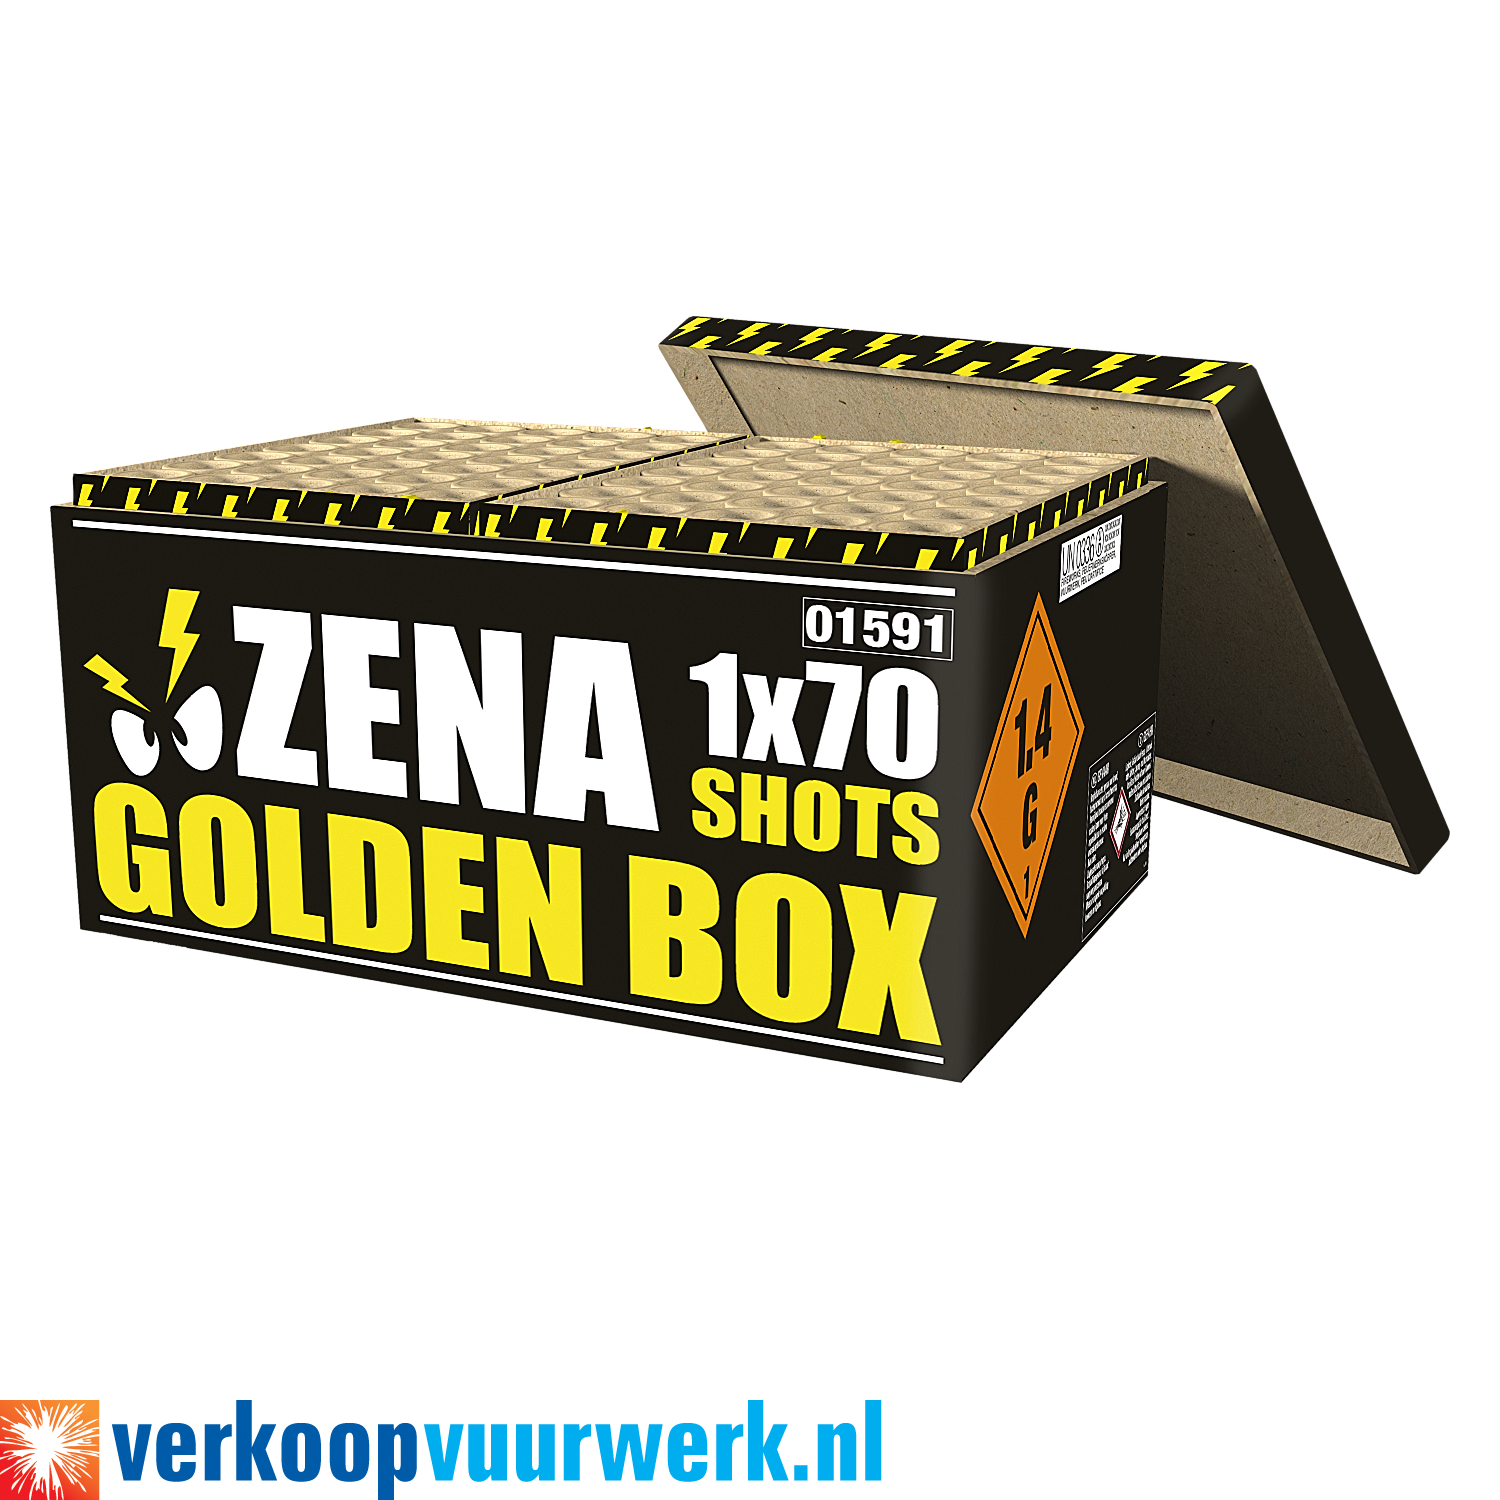 Zena golden box